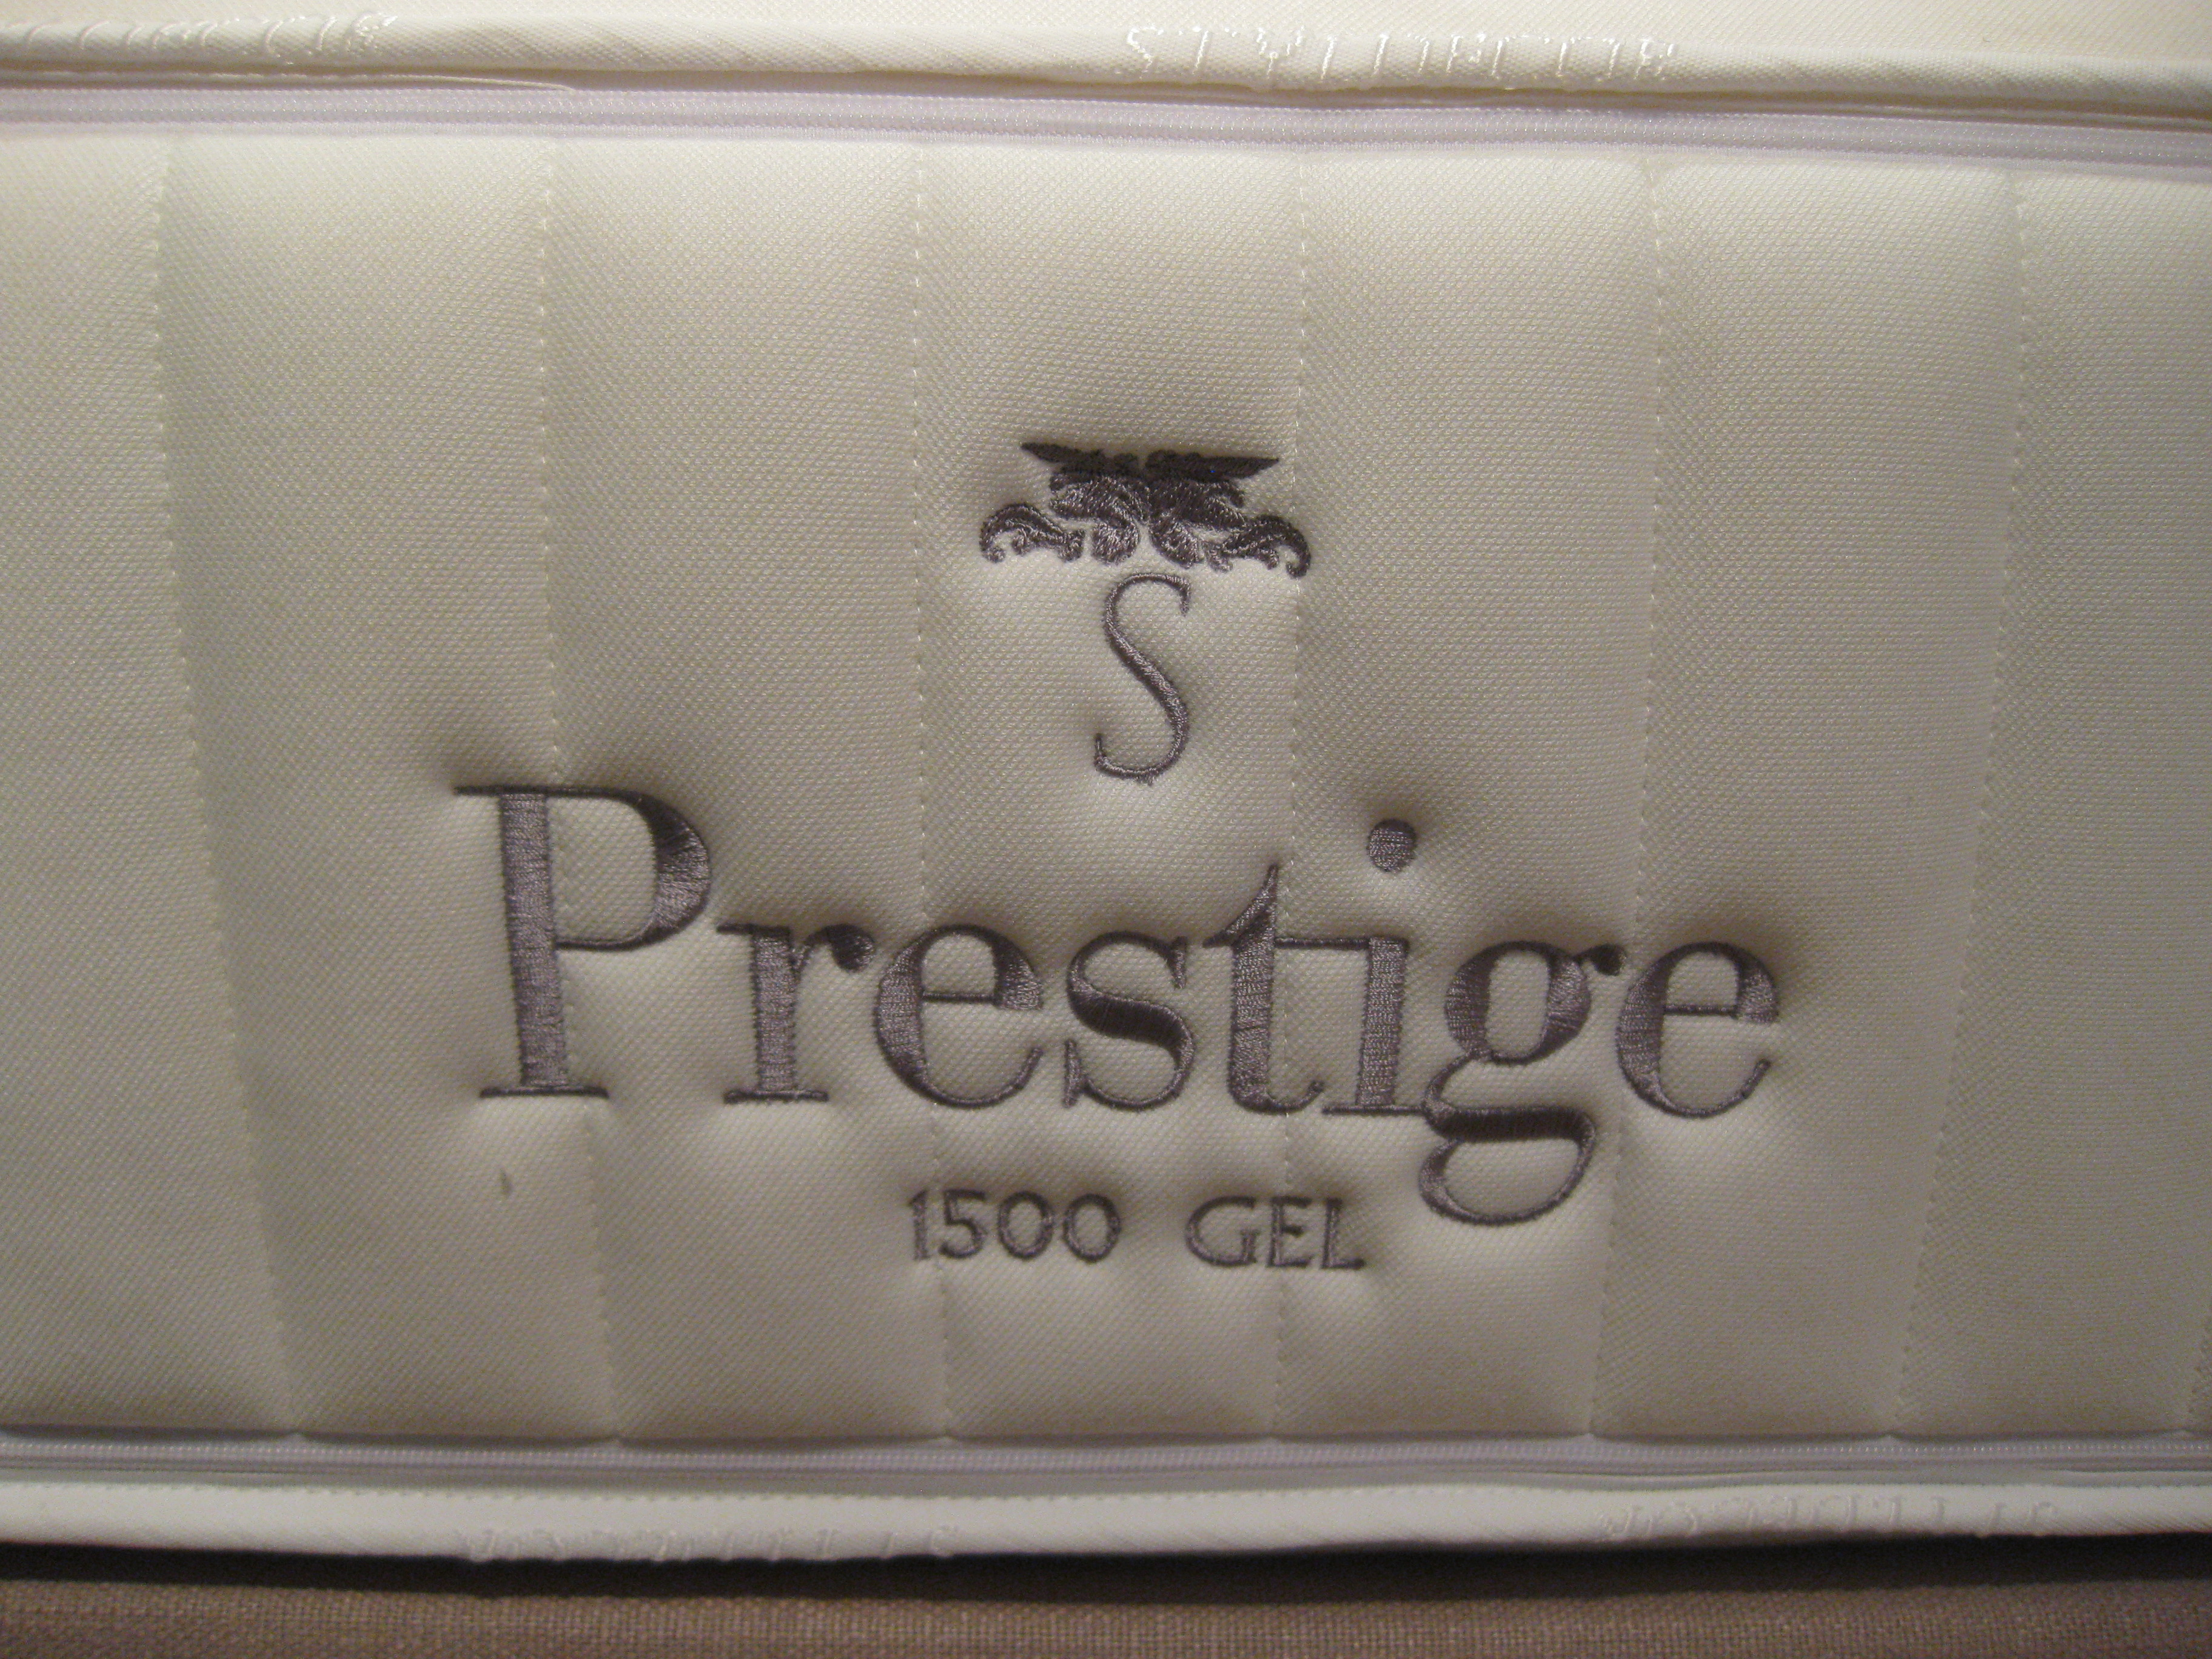 Matras Prestige 1500 Gel